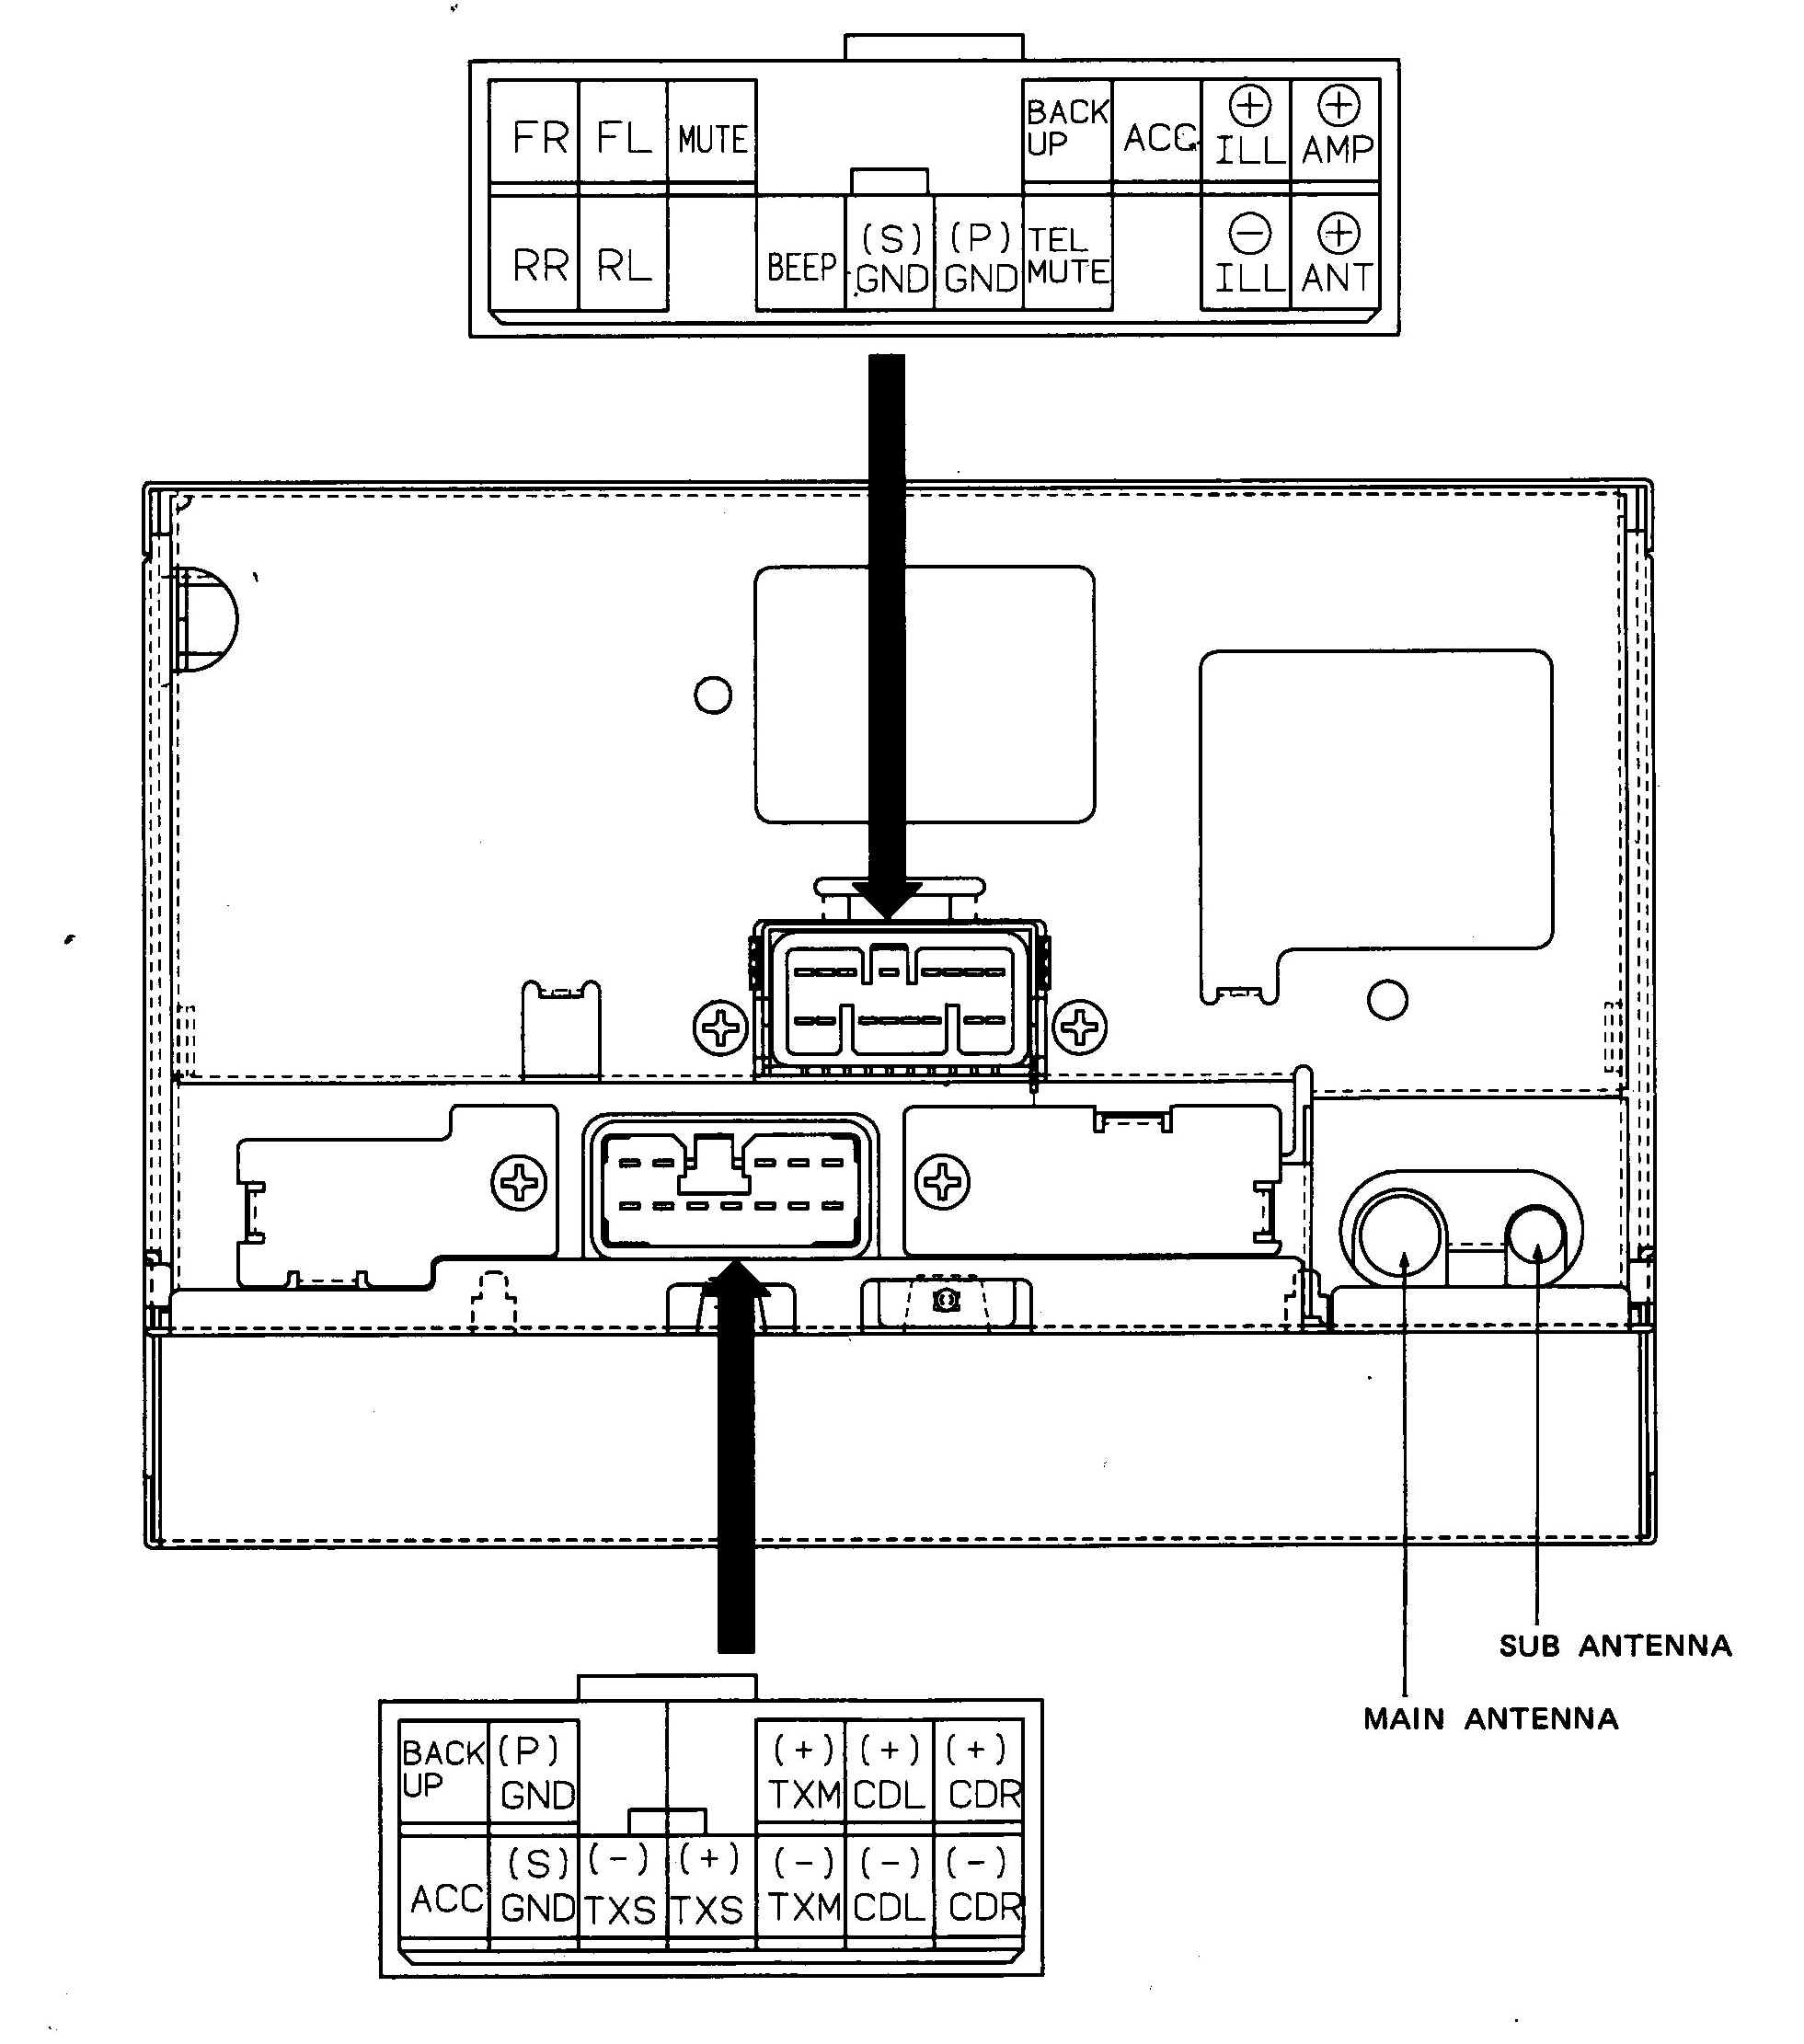 1993 Corvette Bose Radio Wiring Diagram - Wiring Diagram